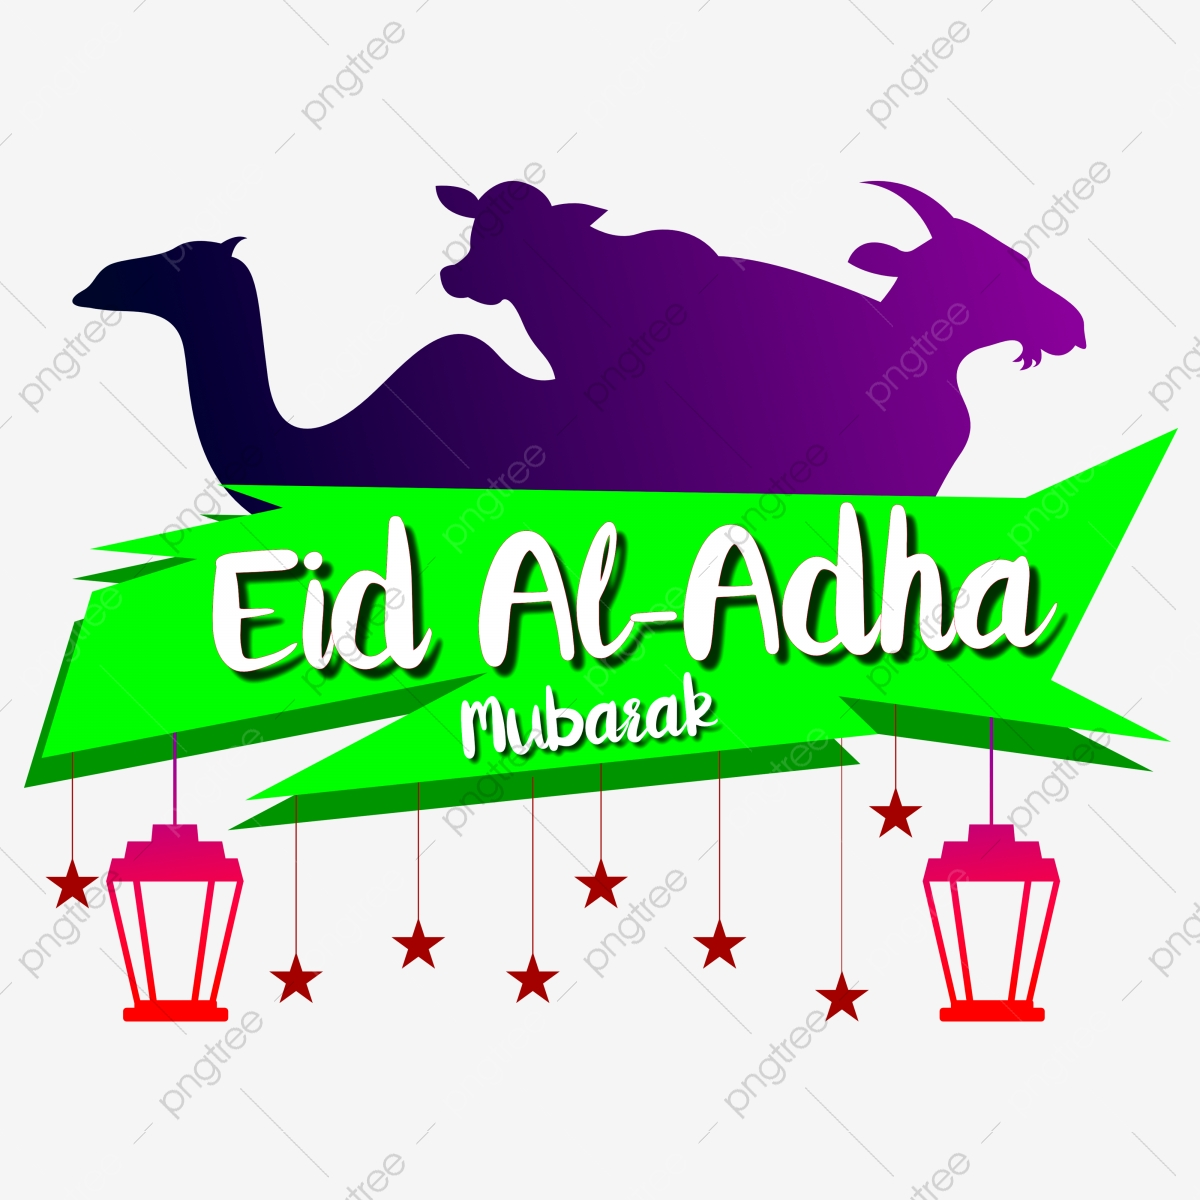 eid al adha png images vector and psd files free download on pngtree https pngtree com freepng eid al adha png element with animal silhouette vector image idul adha 5393391 html